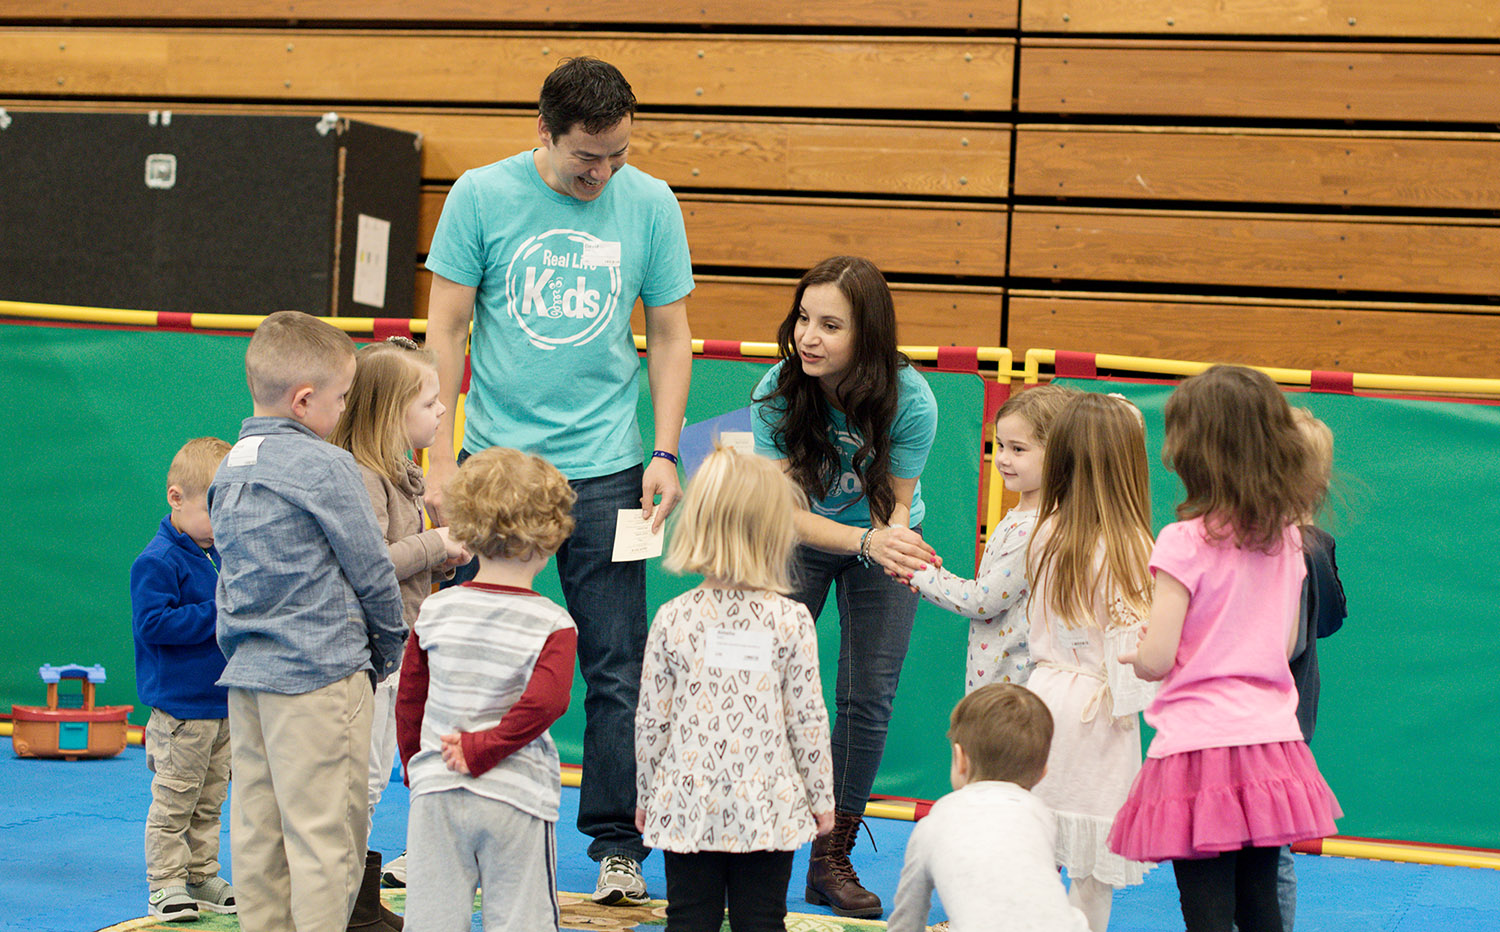 Real Life Kids - We believe in partnering with parents to raise kids who love God, love church, and become great leaders. Our kids teams provide energetic and creative environments every weekend. Our kids aren't just the future of the church, they are a vital part of our church now.